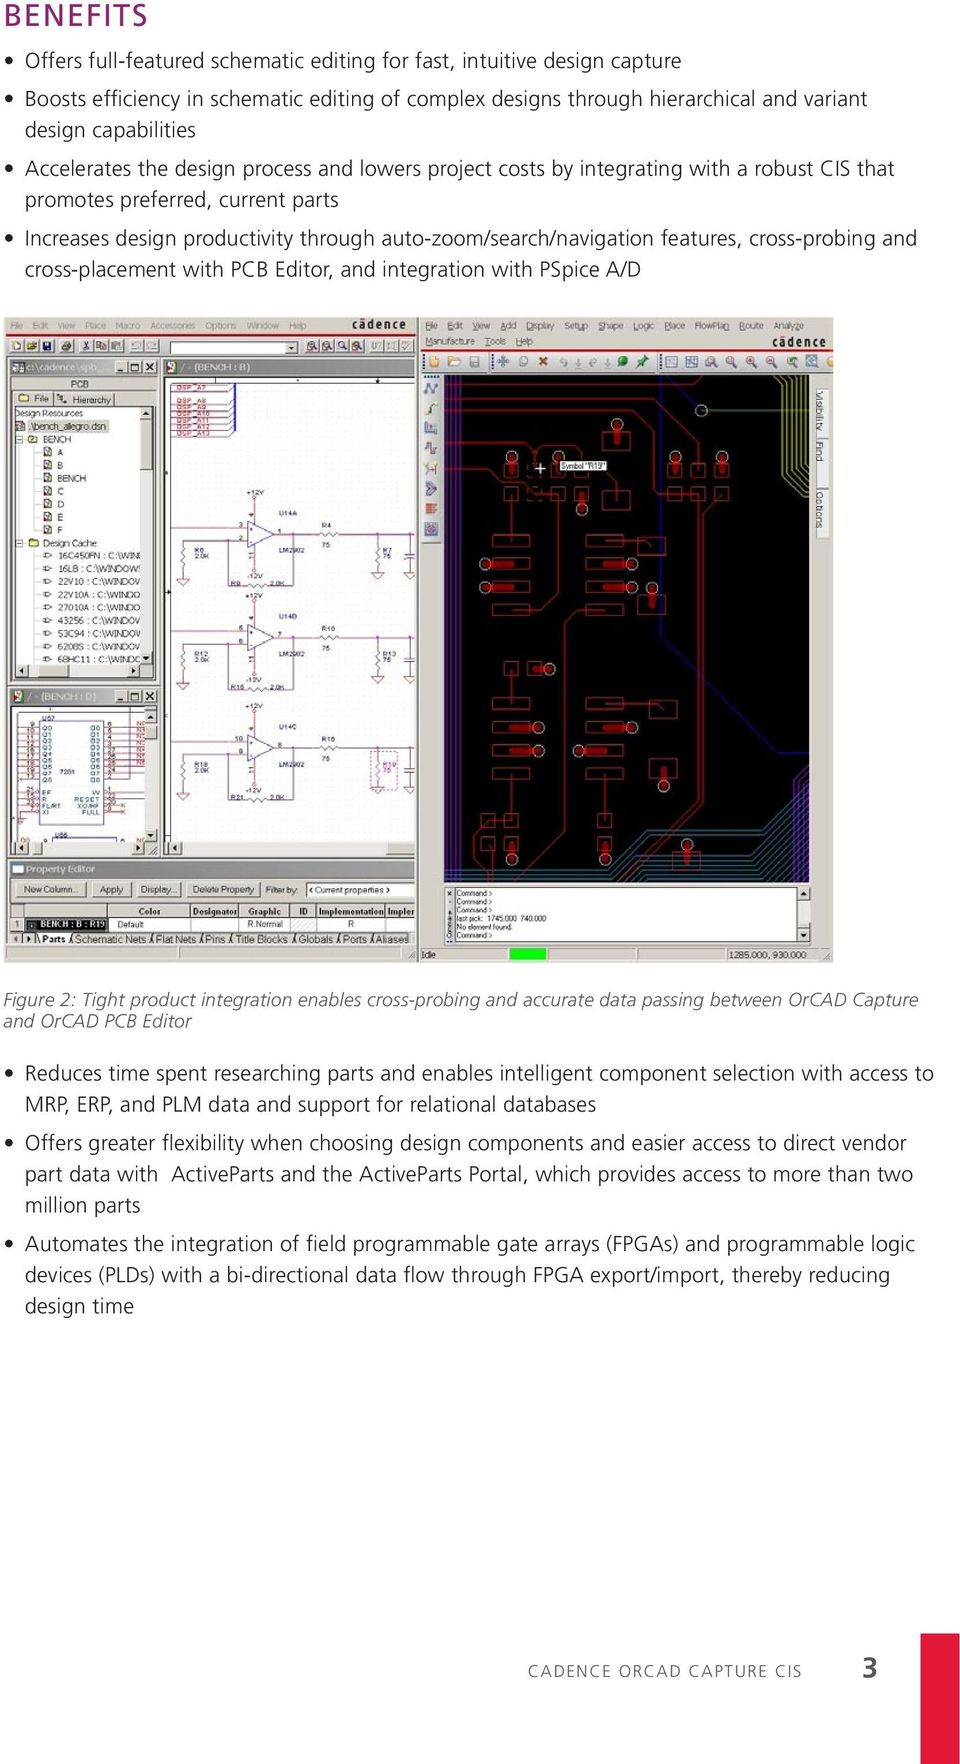 features, cross-probing and cross-placement with PCB Editor, and integration with PSpice A/D Figure 2: Tight product integration enables cross-probing and accurate data passing between Capture and